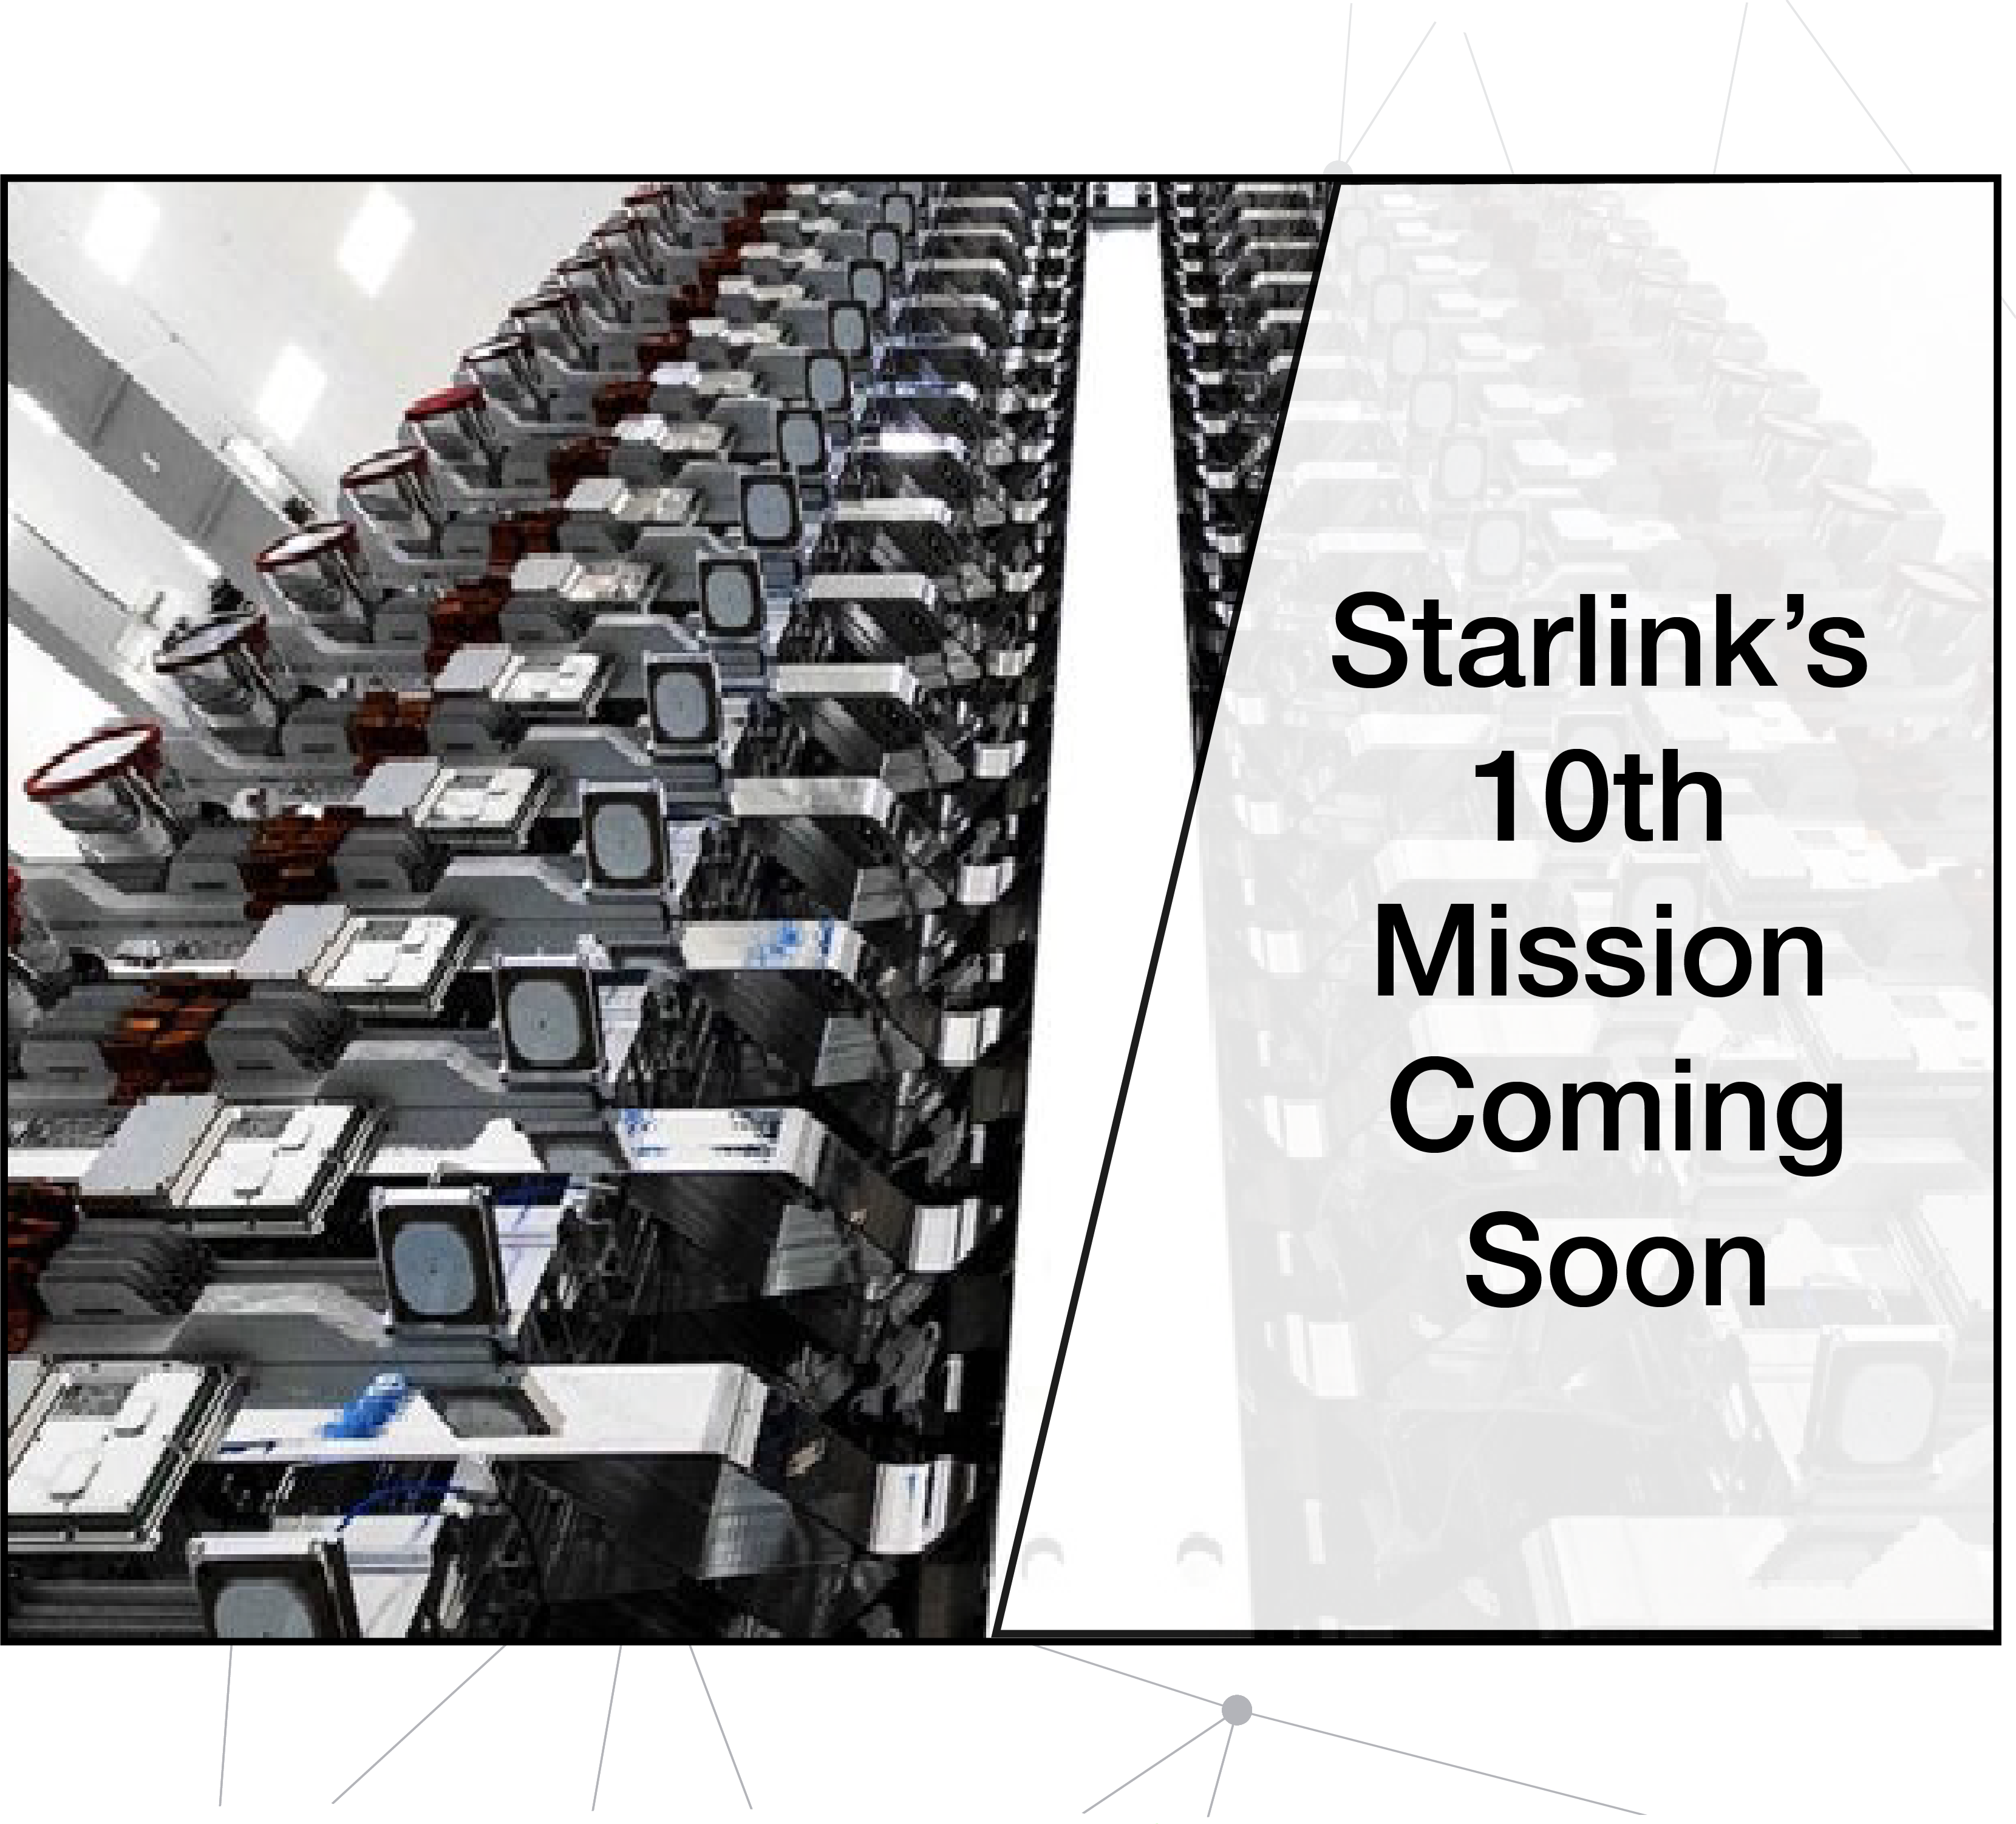 SpaceX's tenth Starlink mission coming soon!